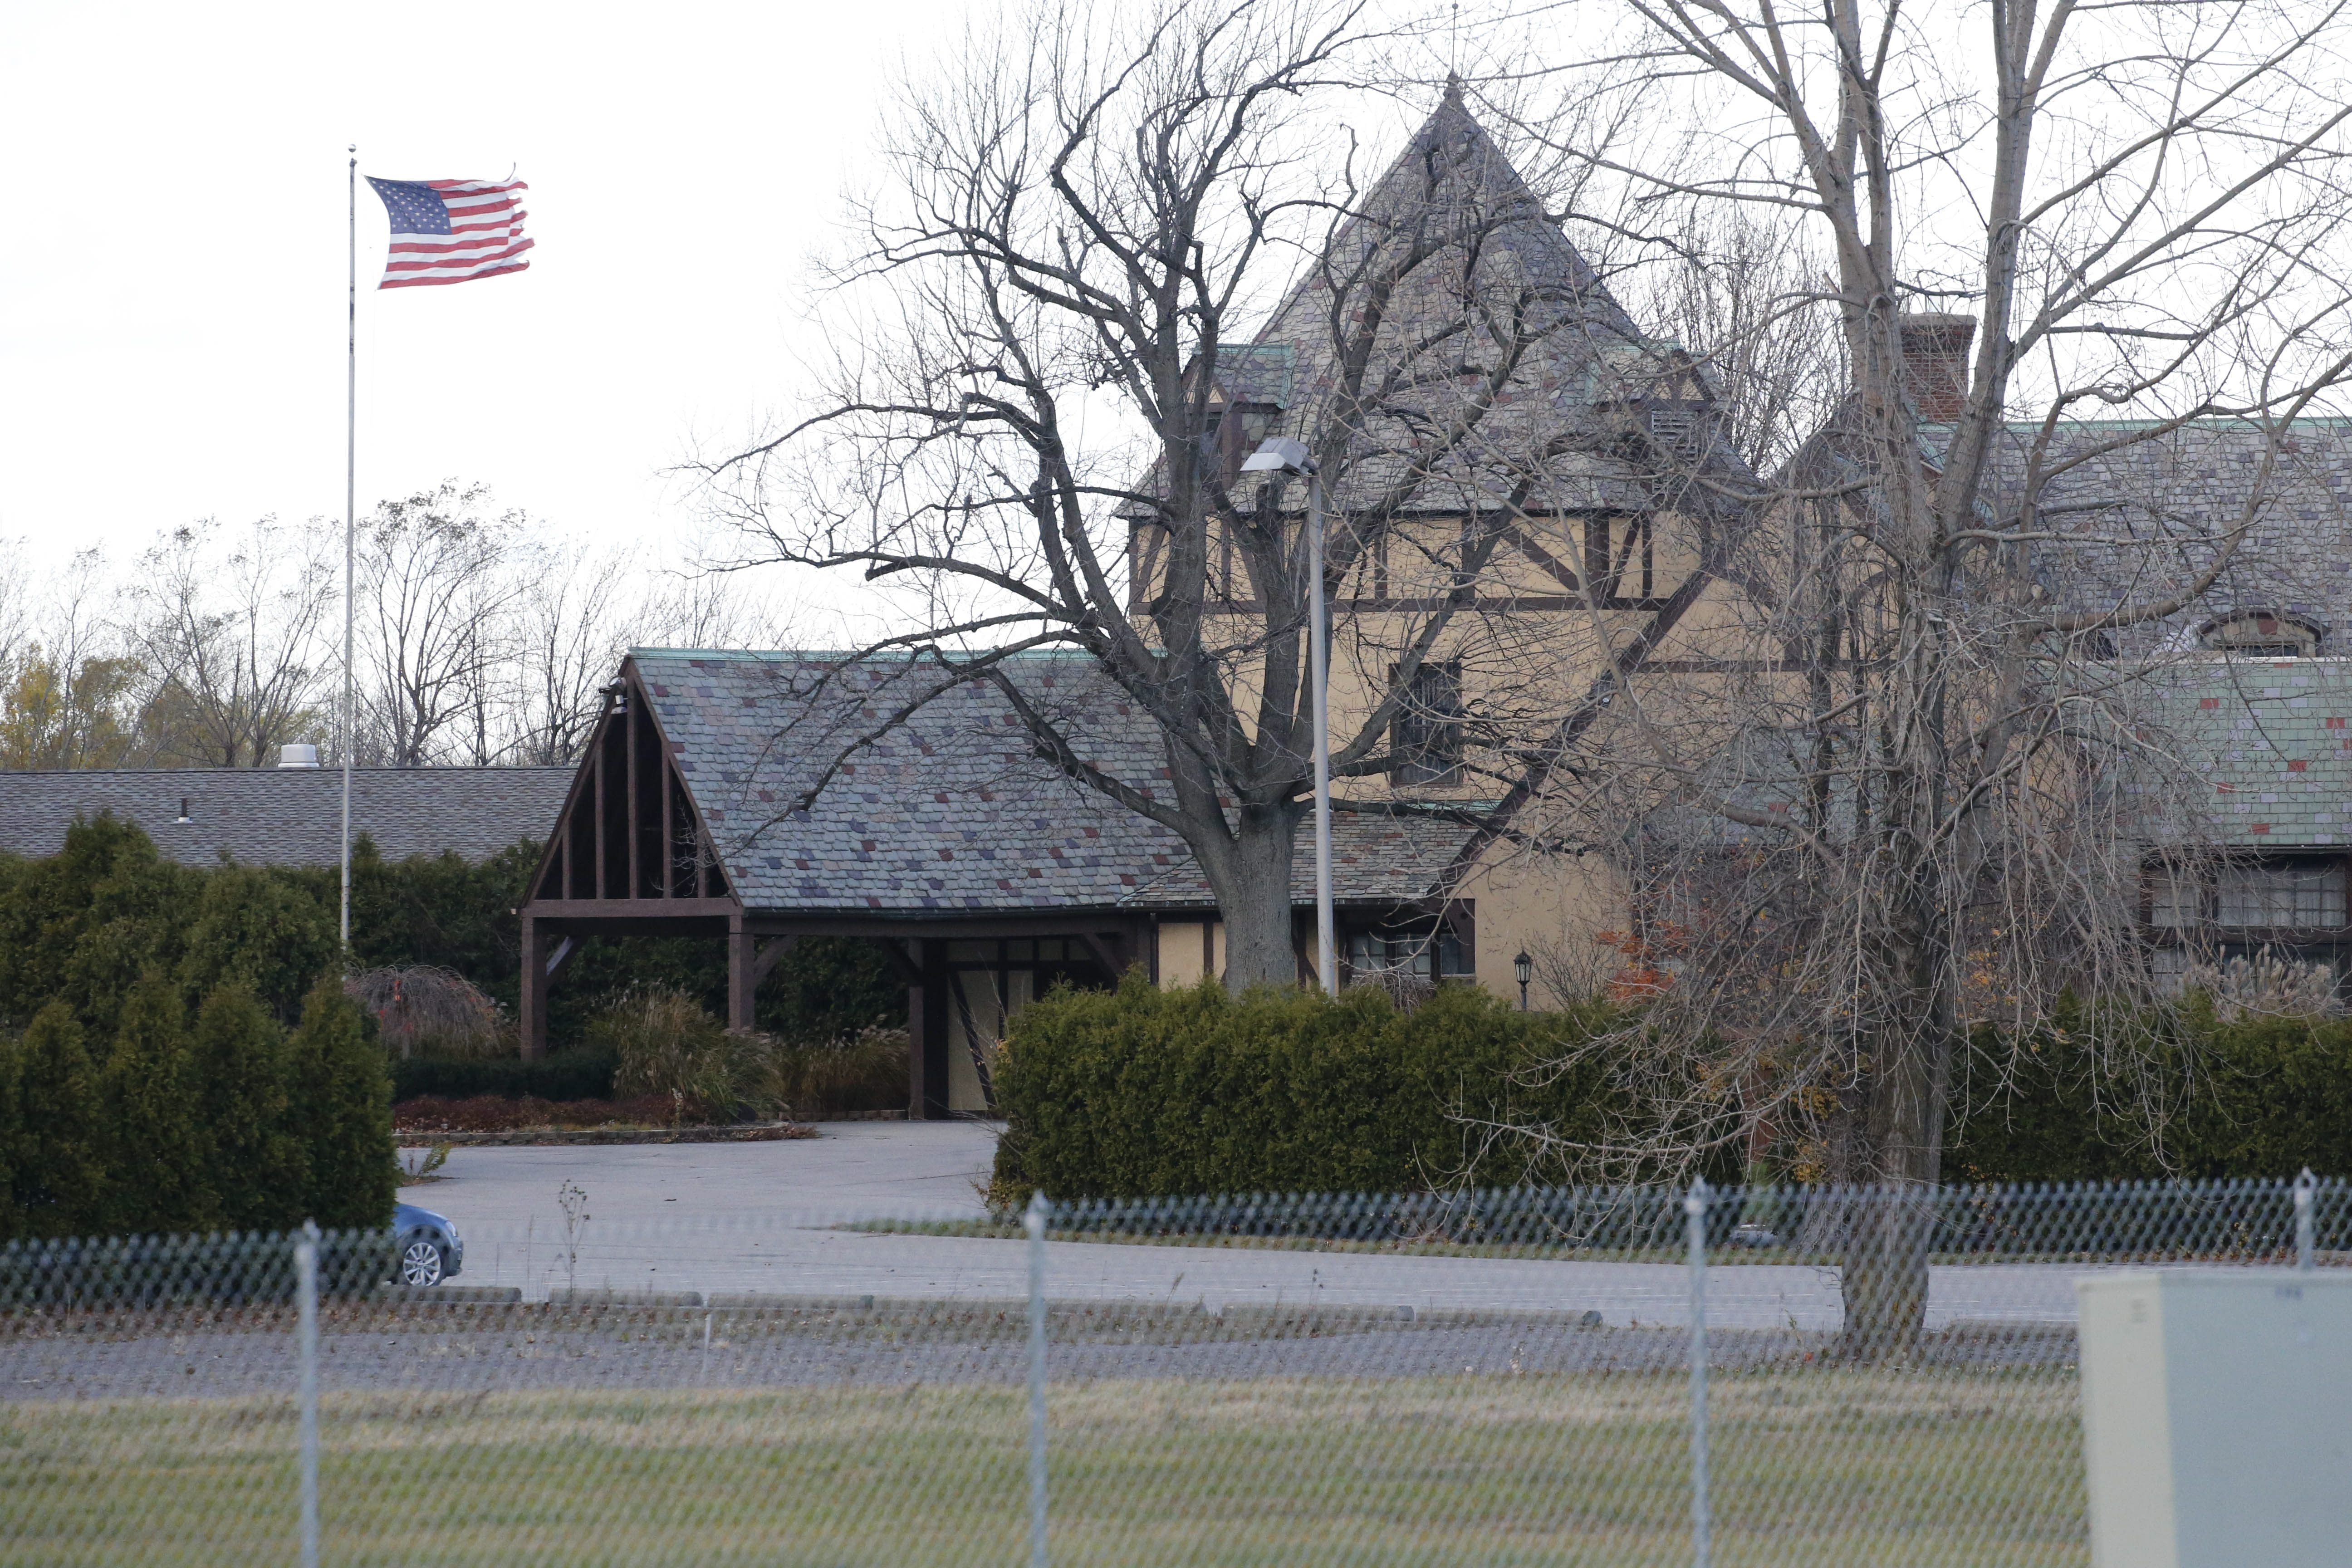 A plan to develop the former Westwood Country Club on Sheridan Drive for apartments, condominiums, a nursing home and a hotel has sparked opposition from neighbors. (Derek Gee/Buffalo News)